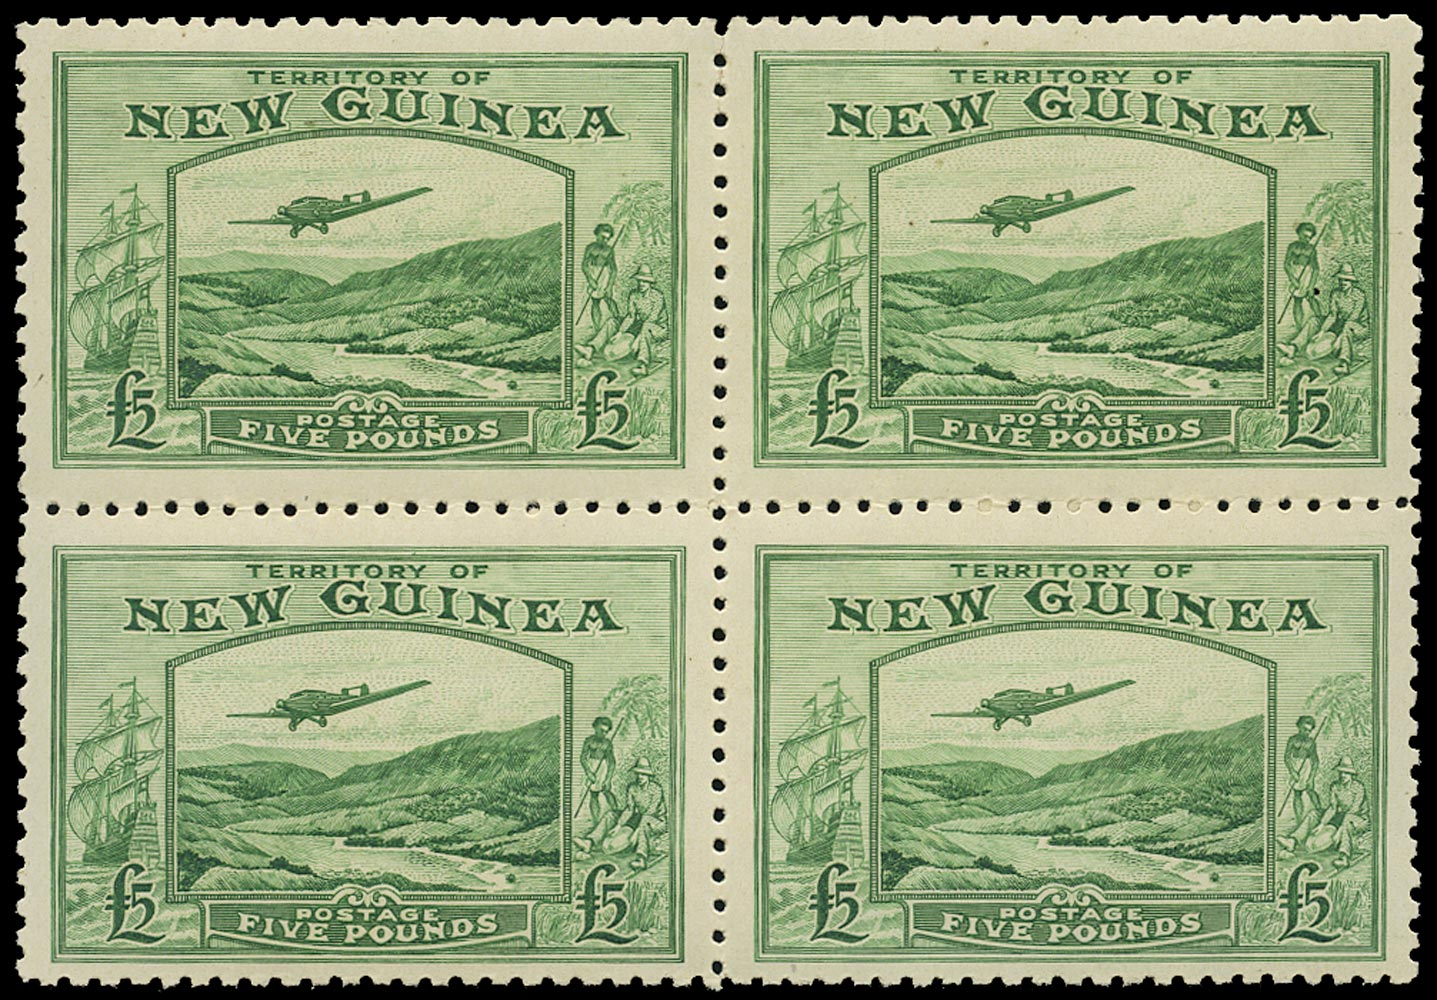 NEW GUINEA 1935  SG205 Mint unmounted Air £5 emerald-green Bulolo Goldfields block of 4